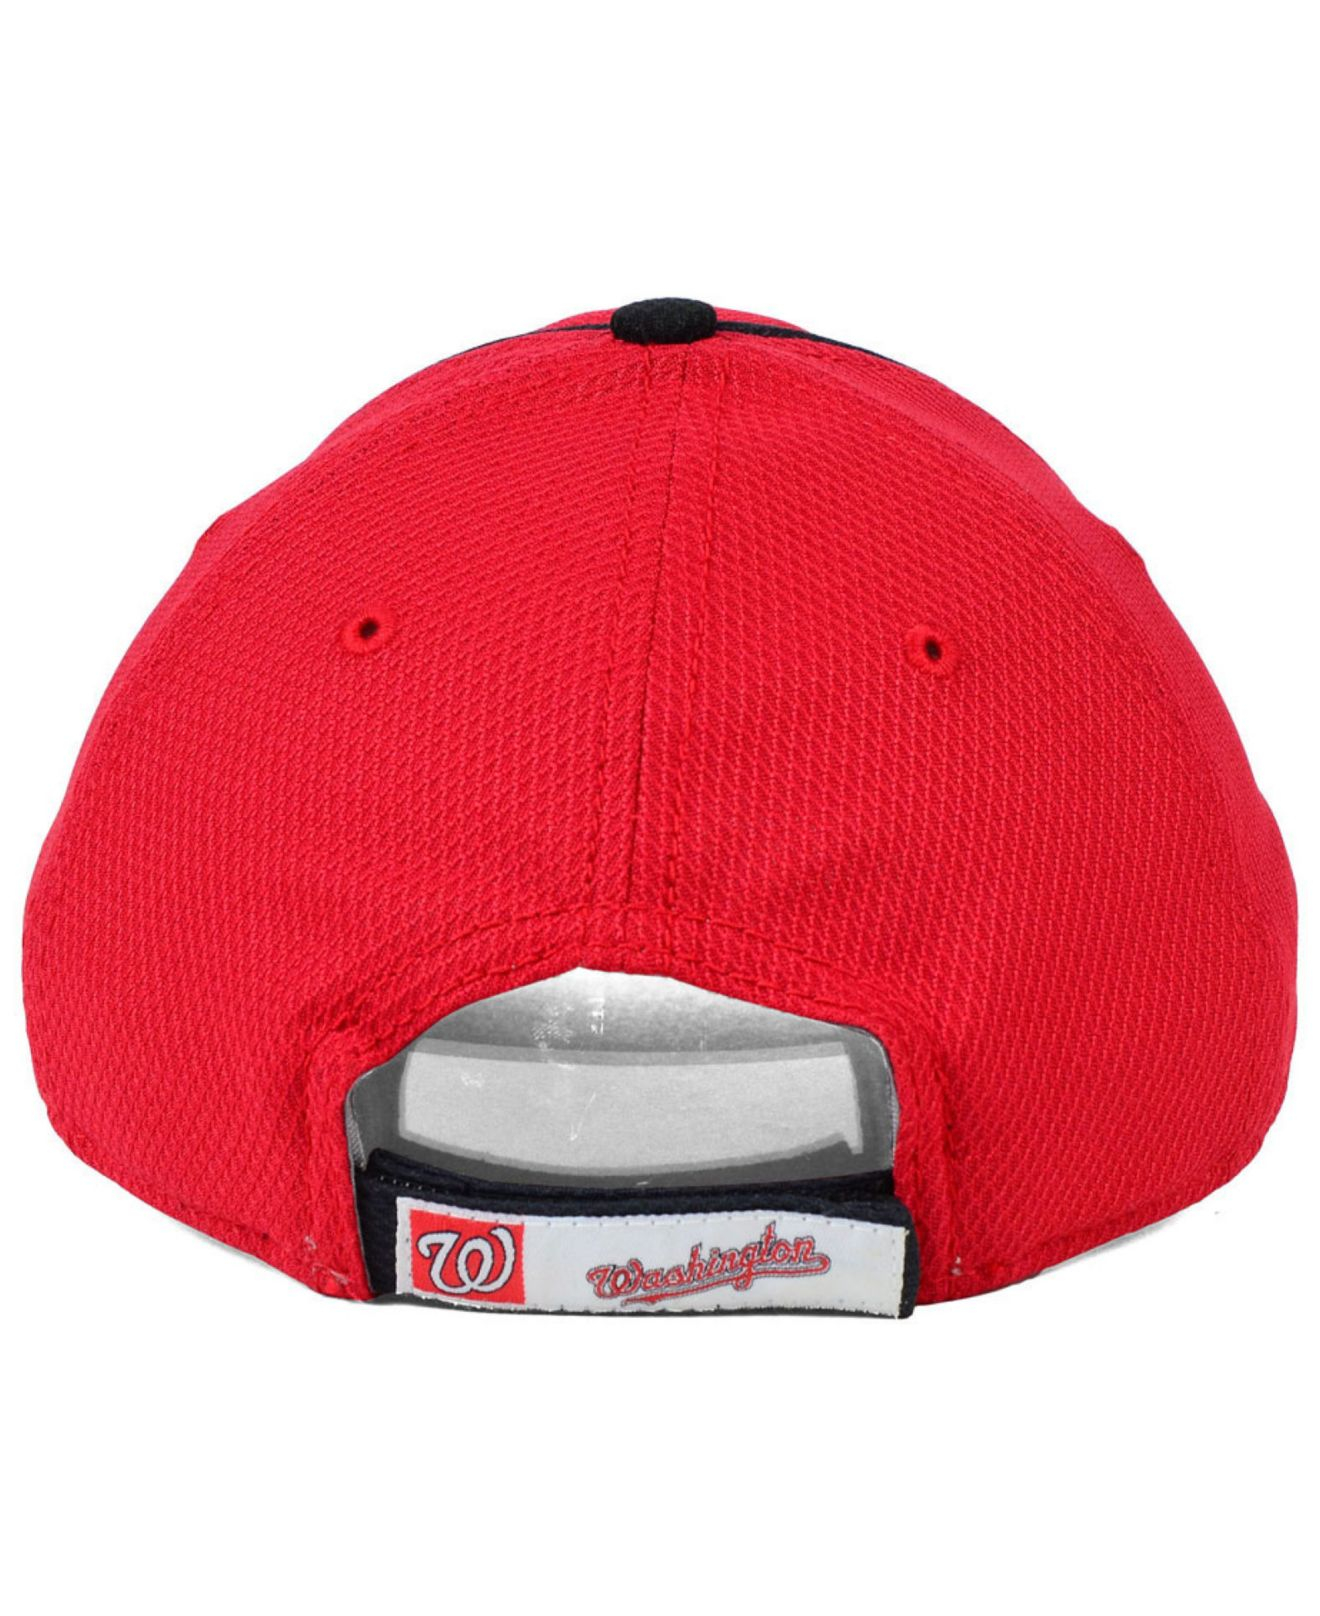 a86cd9ea328 ... reduced lyst ktz kids washington nationals junior fan wave 9forty cap in  red 07d2f c45a1